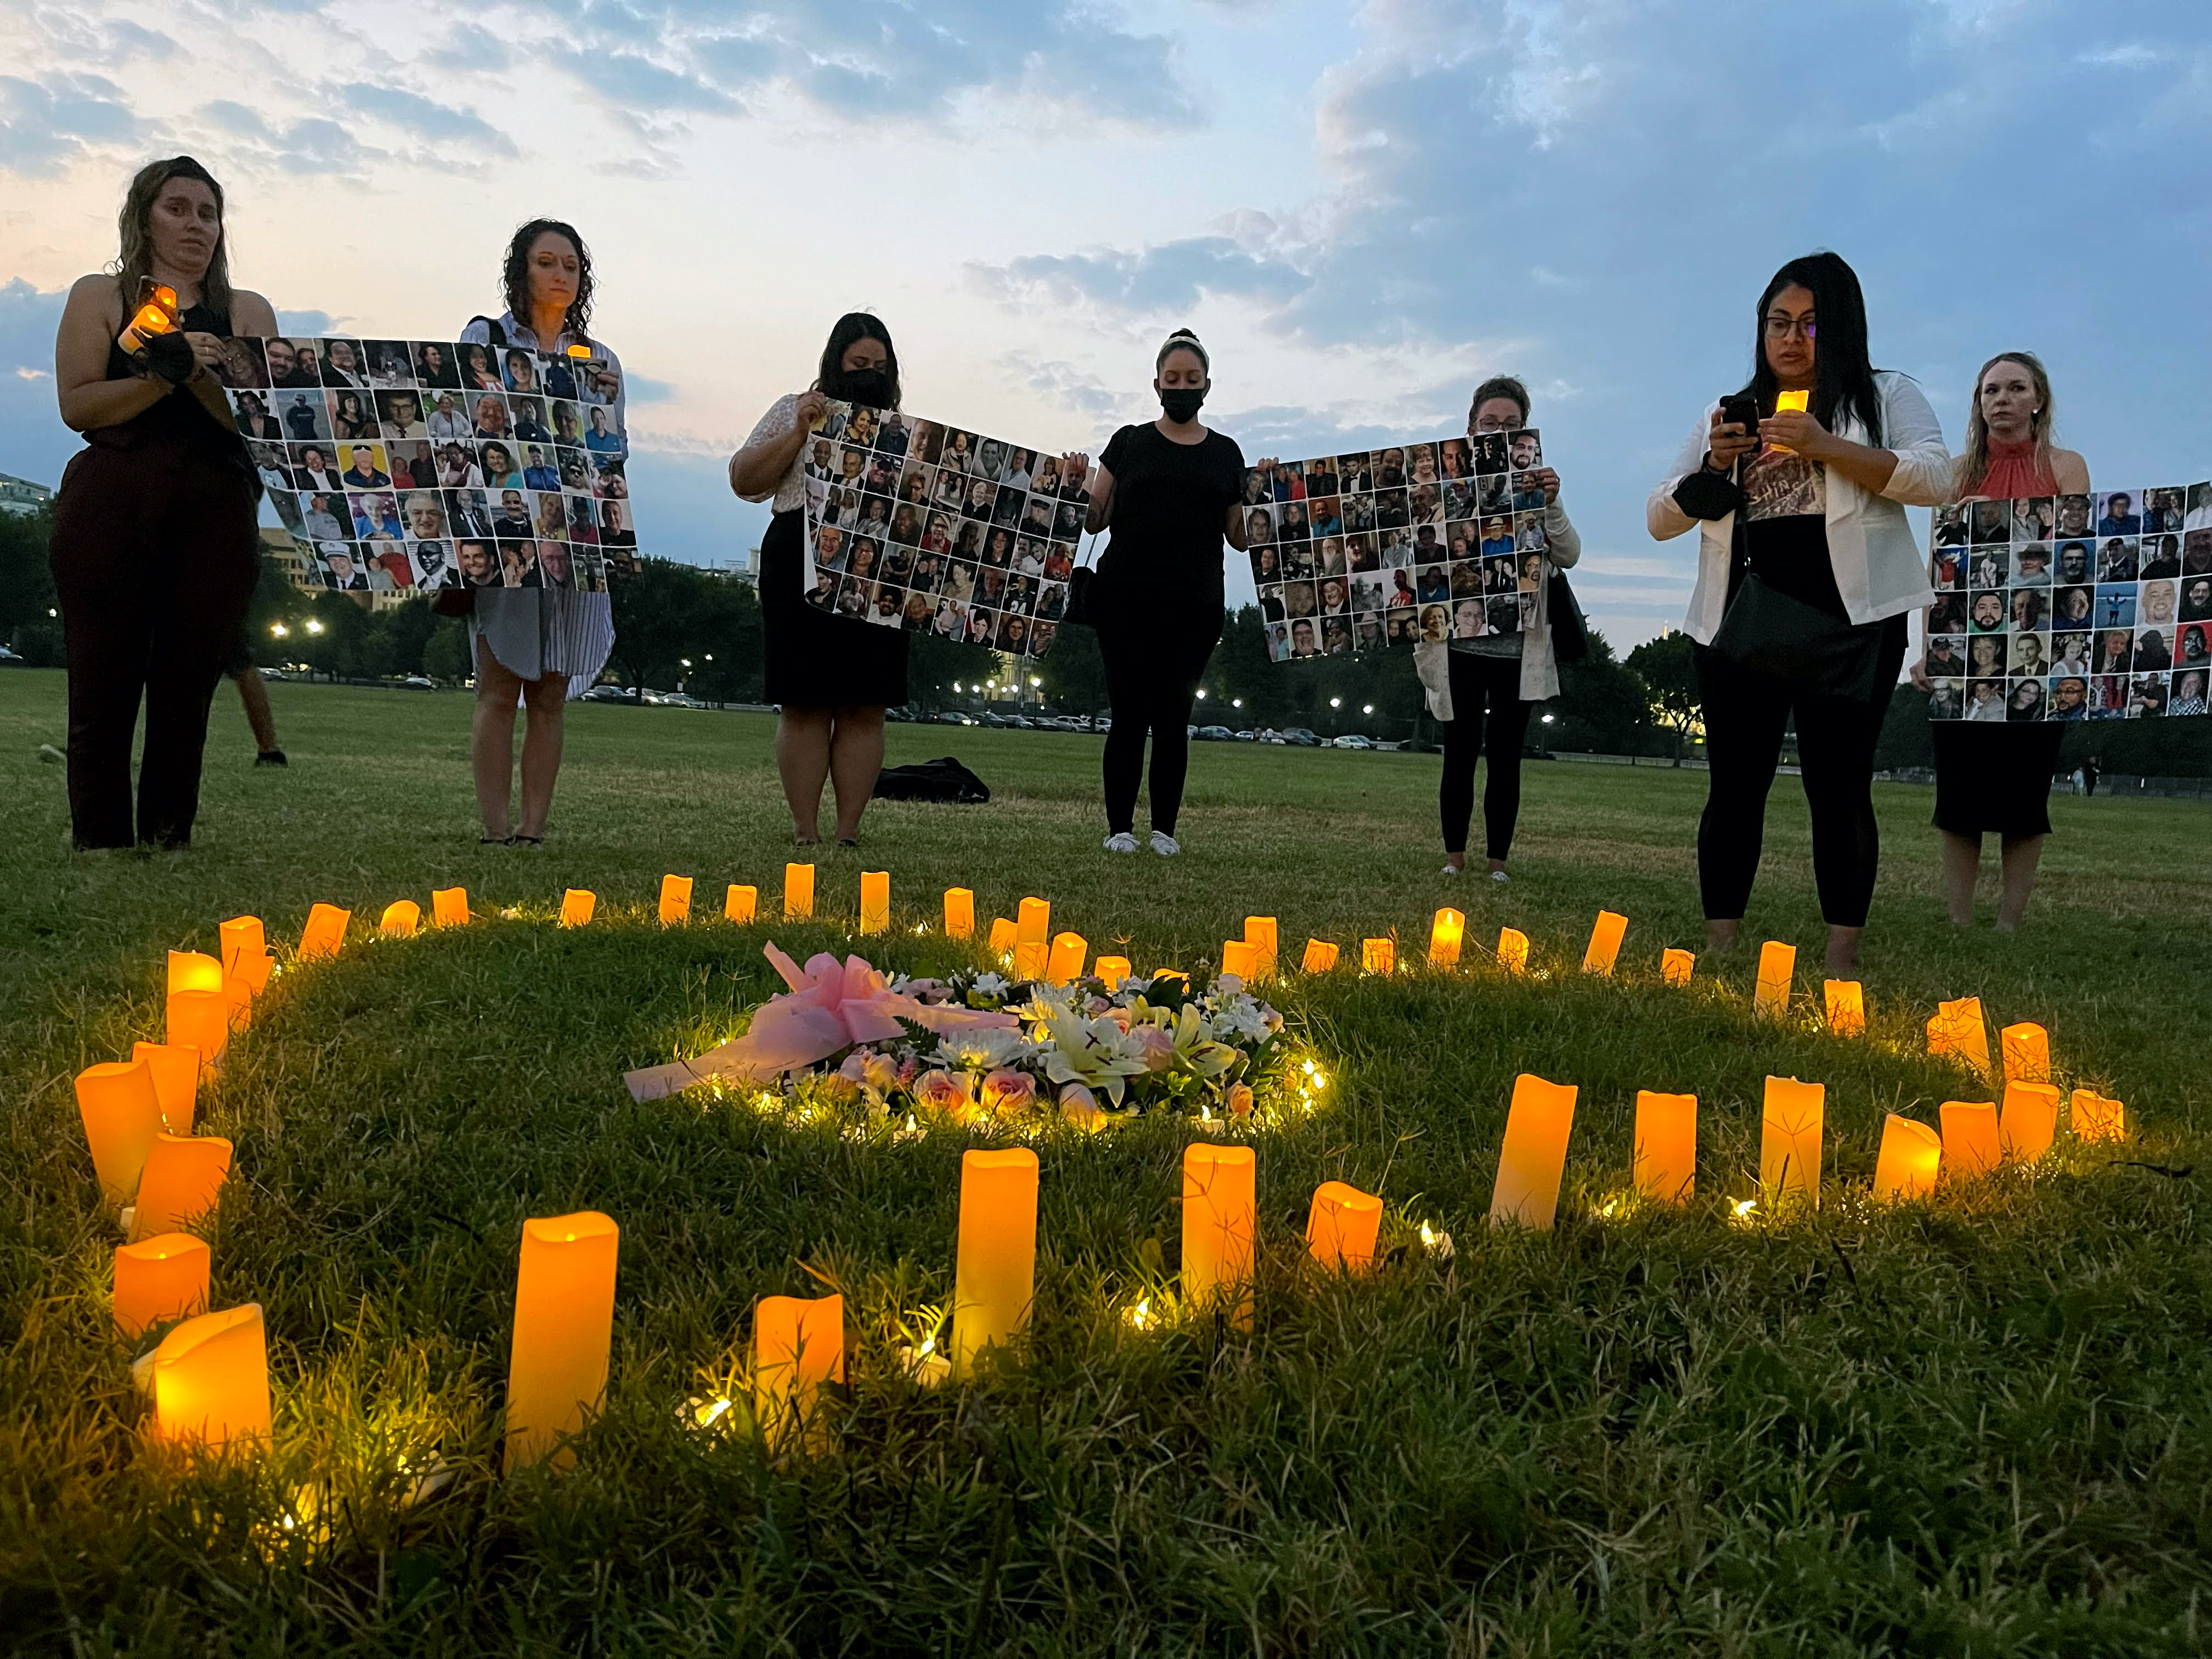 Activists lobbying in Washington D.C. hold up images of lost loved ones at a lighting ceremony on July 26, 2021.